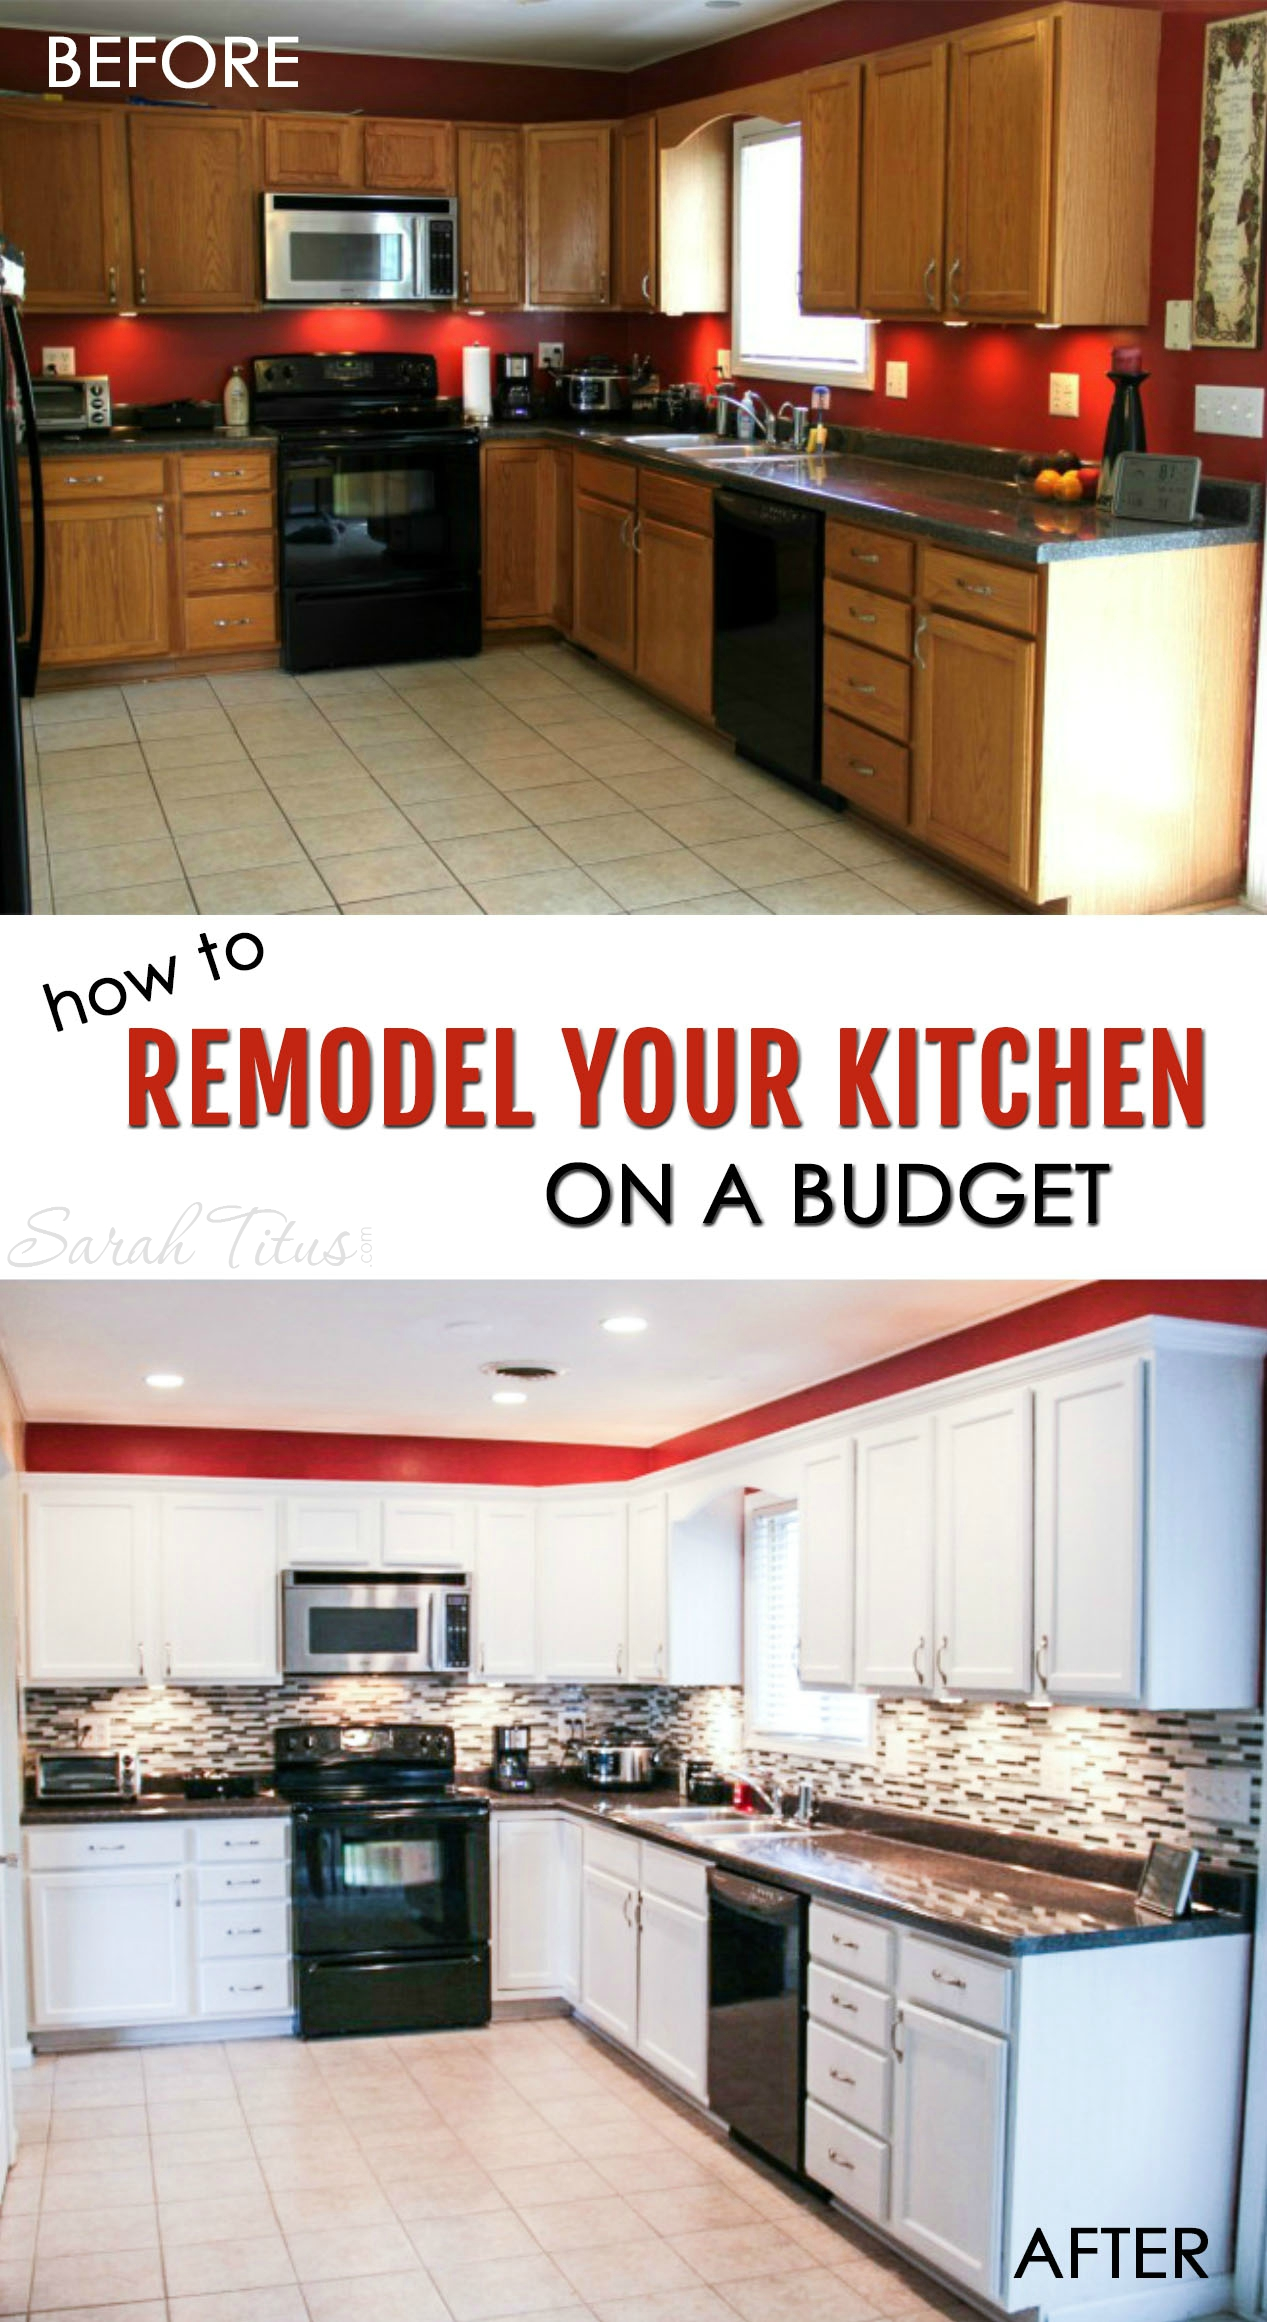 how to remodel your kitchen on a budget budget kitchen remodel Most kitchen renovations are very expensive but this trick can make your kitchen look brand